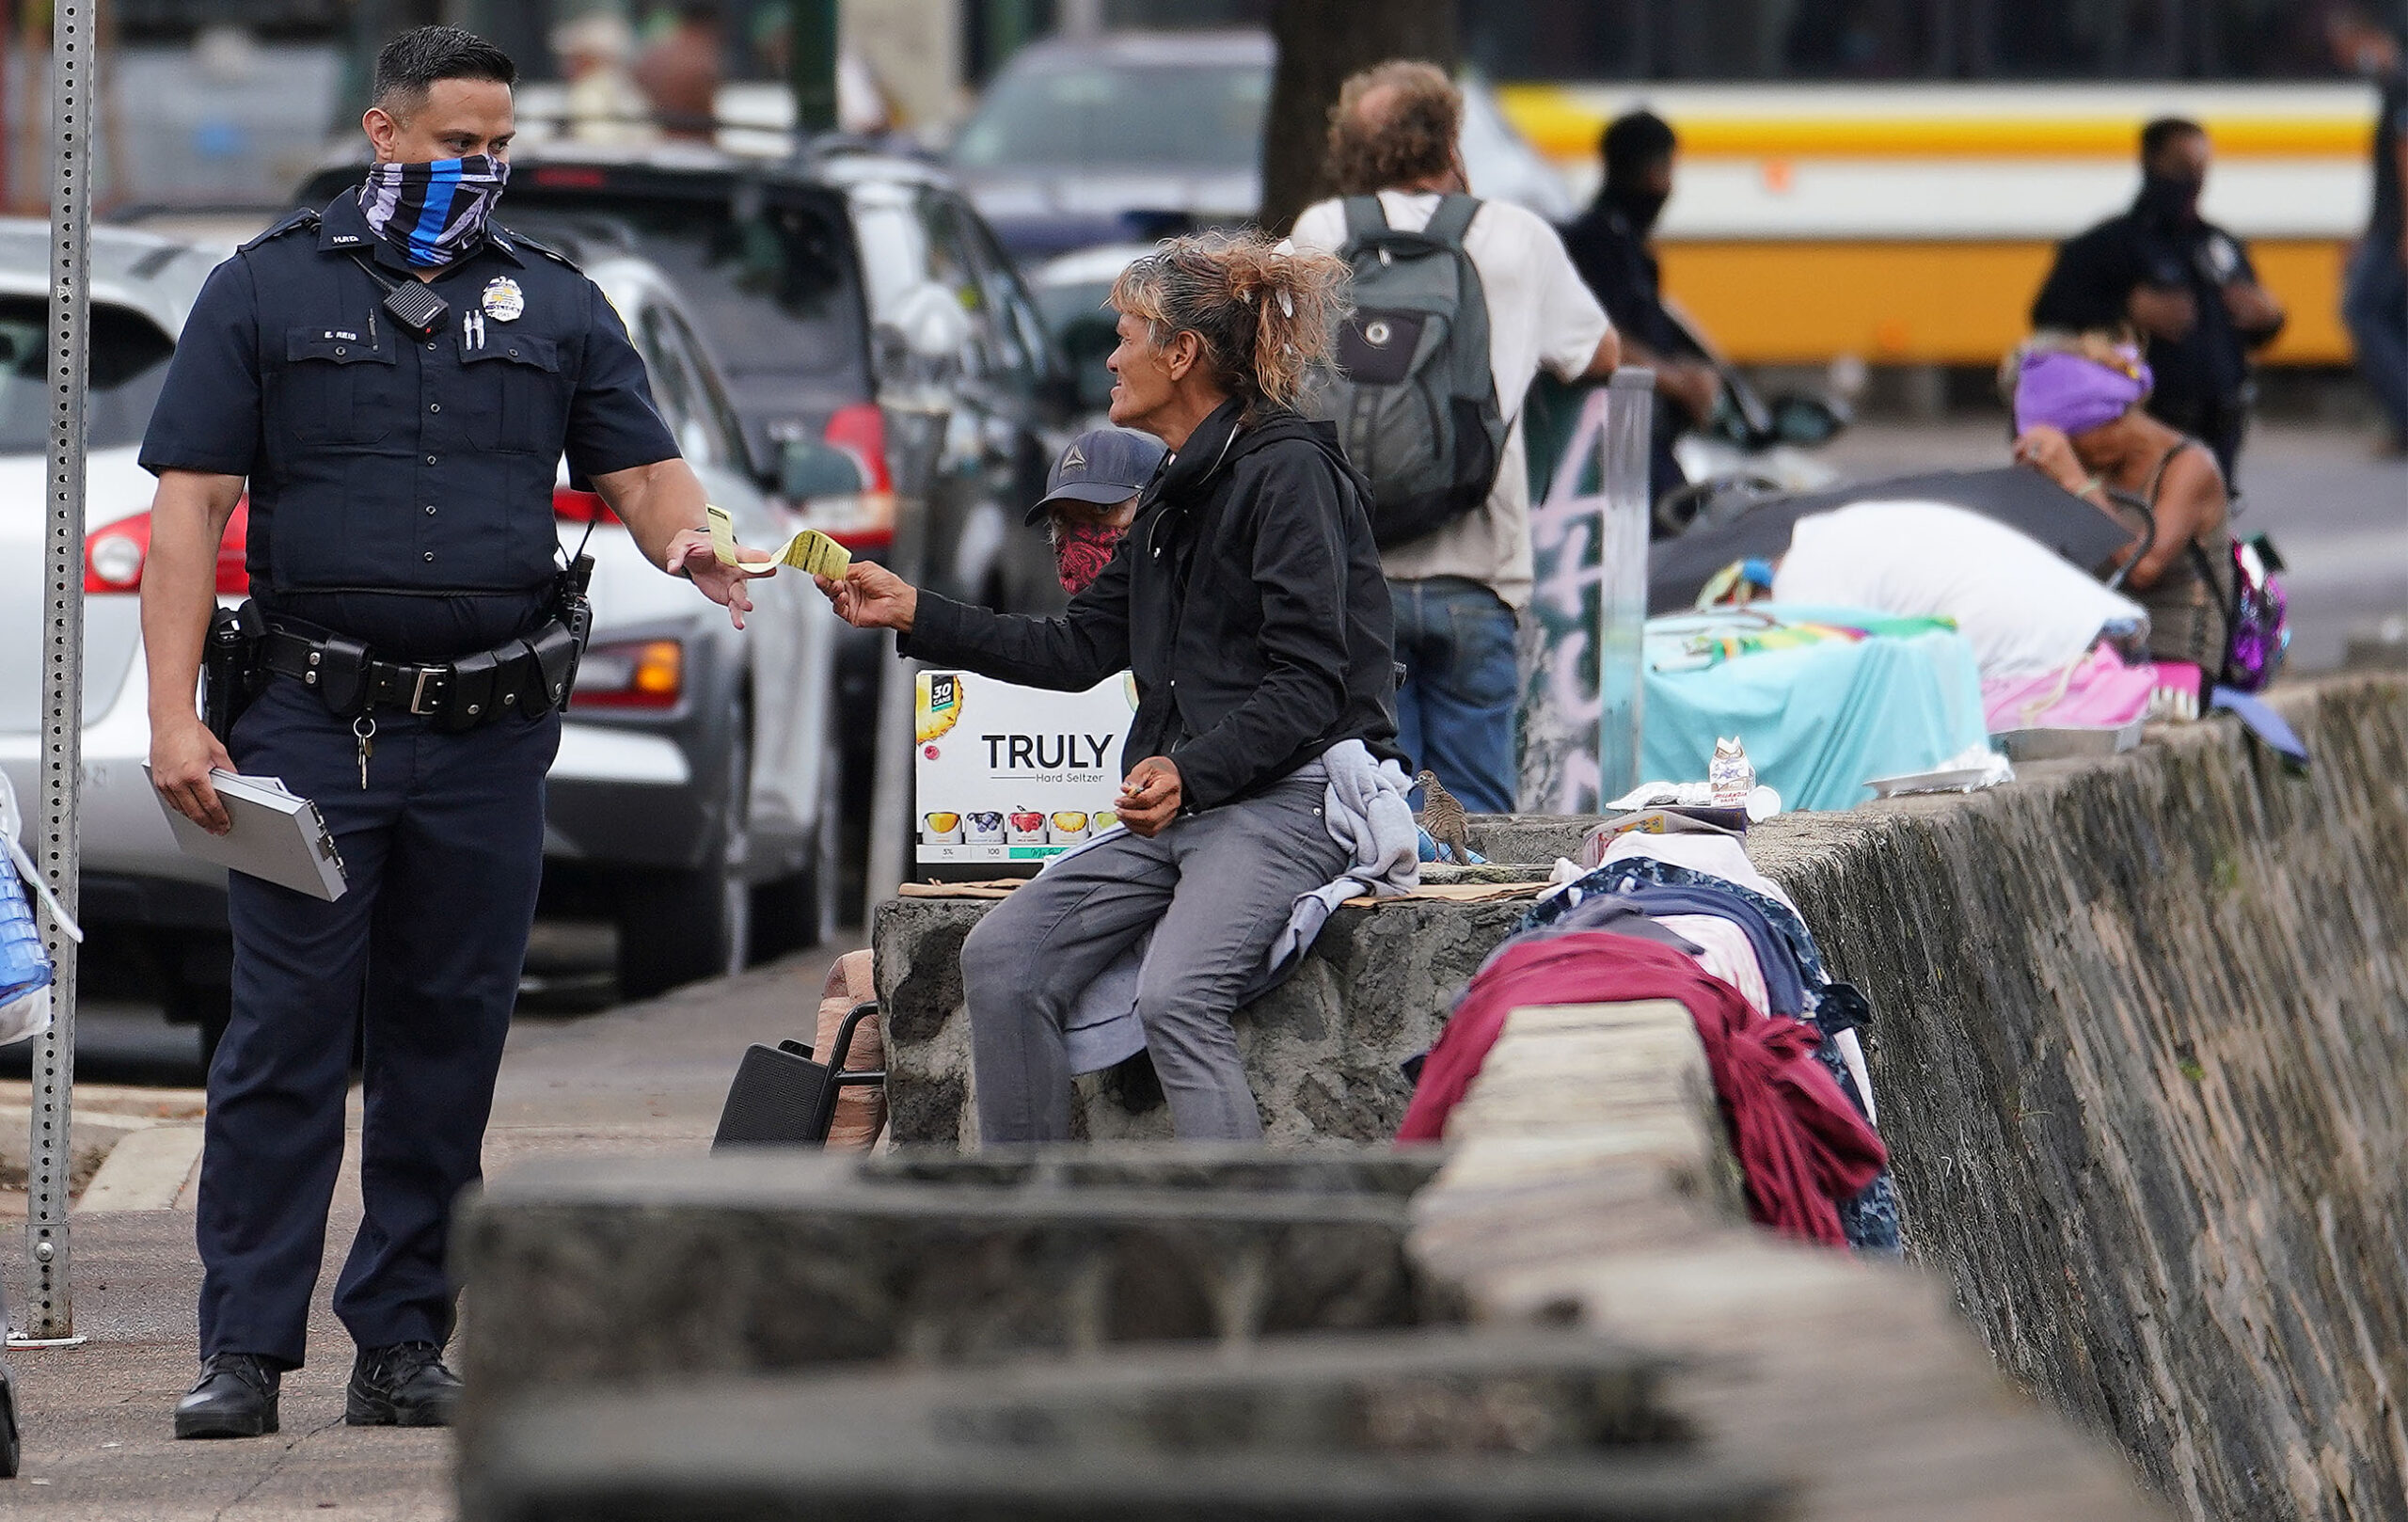 <p>Yvonne Christie, 63, was cited on Oct. 23 for sitting on the River Street wall with a shopping cart of belongings. Christie says she is trying to get help to get into housing, but in the meantime, she is waiting for her COVID-19 test results to gain access to sleep in a nearby shelter.</p>